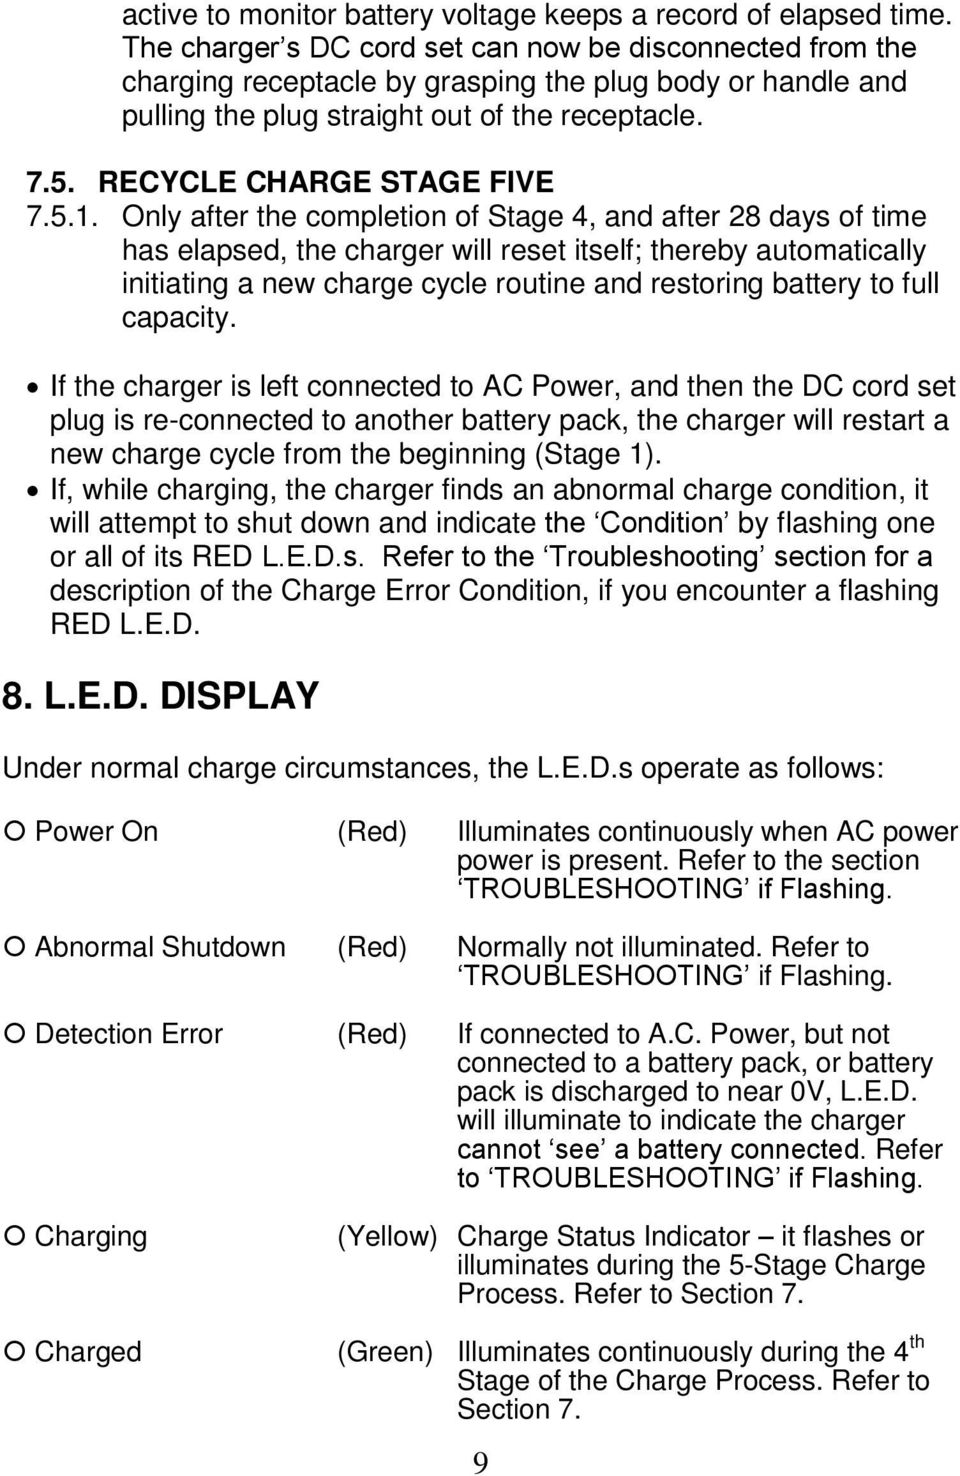 Accusense Charge Series On Off Board Fully Automatic Battery Charger Wiring Diagram For 36 Volt Power Wise Recycle Stage Five 751